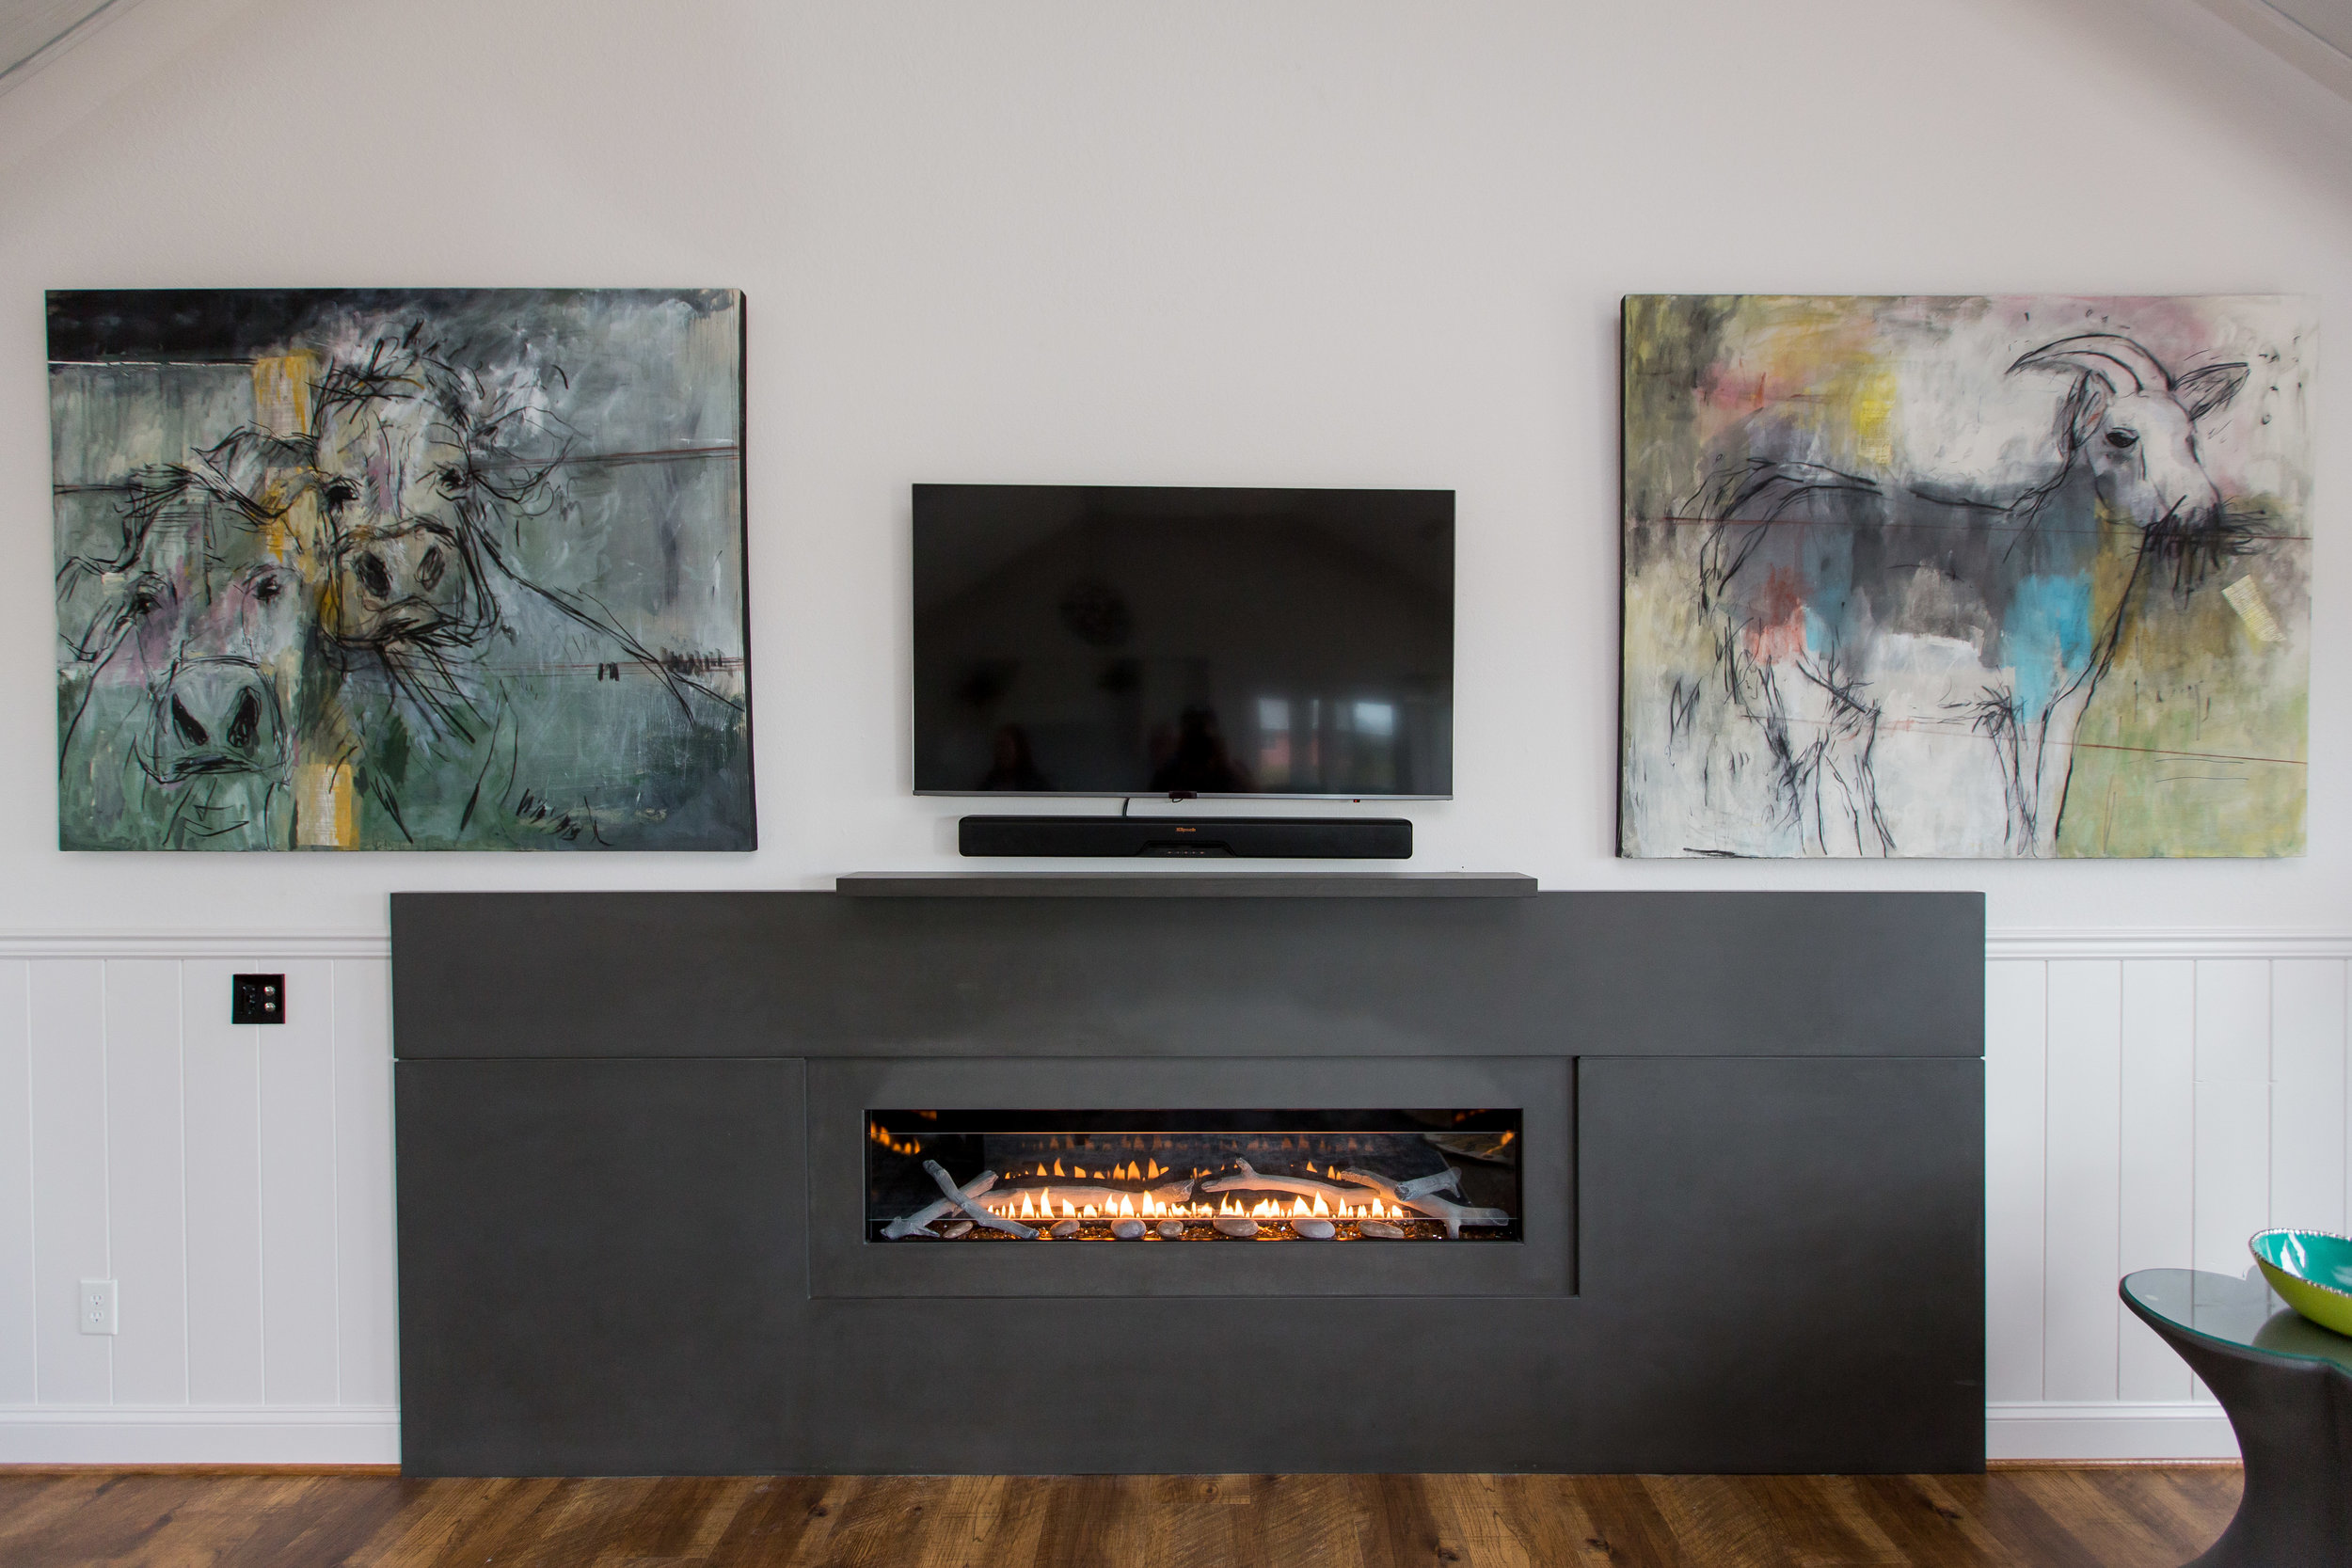 12 Foot Fireplace Surround - Designed by Indehouse Designs